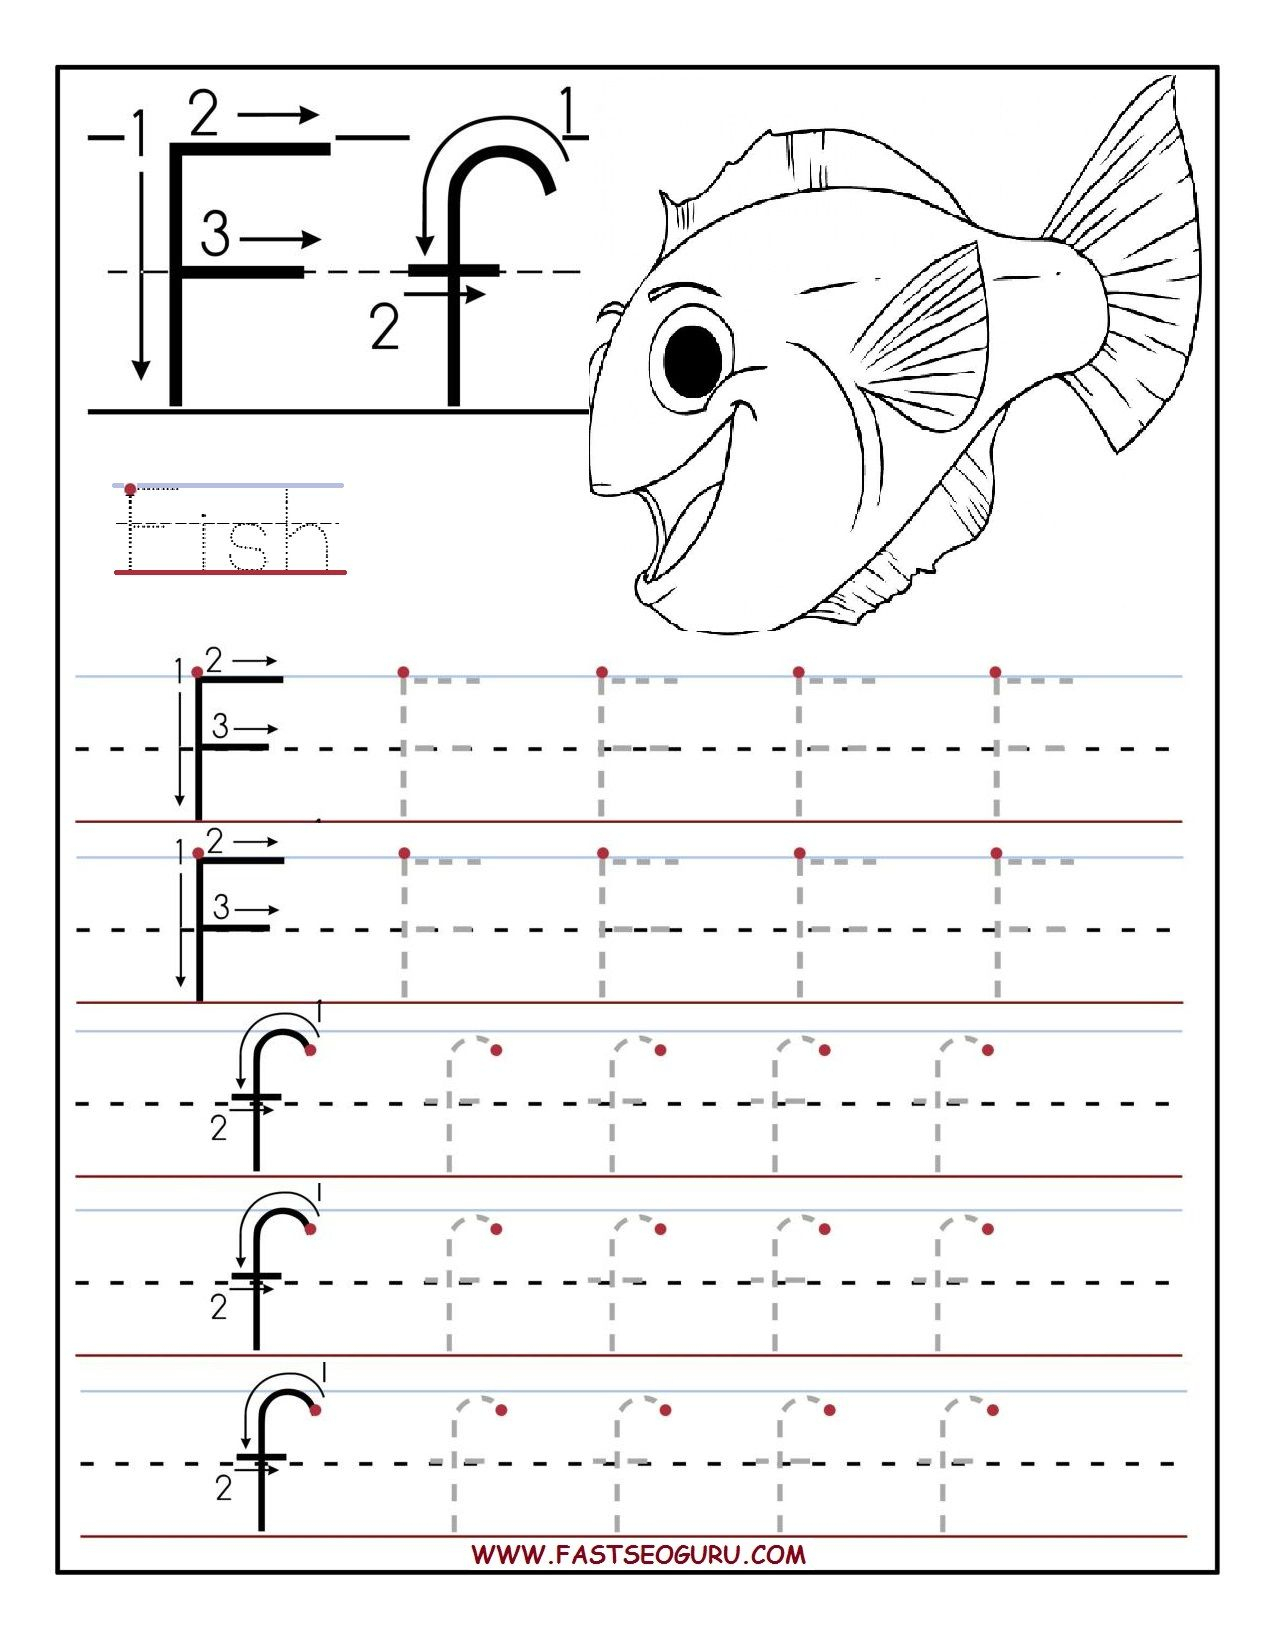 Pin About Preschool Worksheets On Decor inside Letter F Worksheets Pinterest